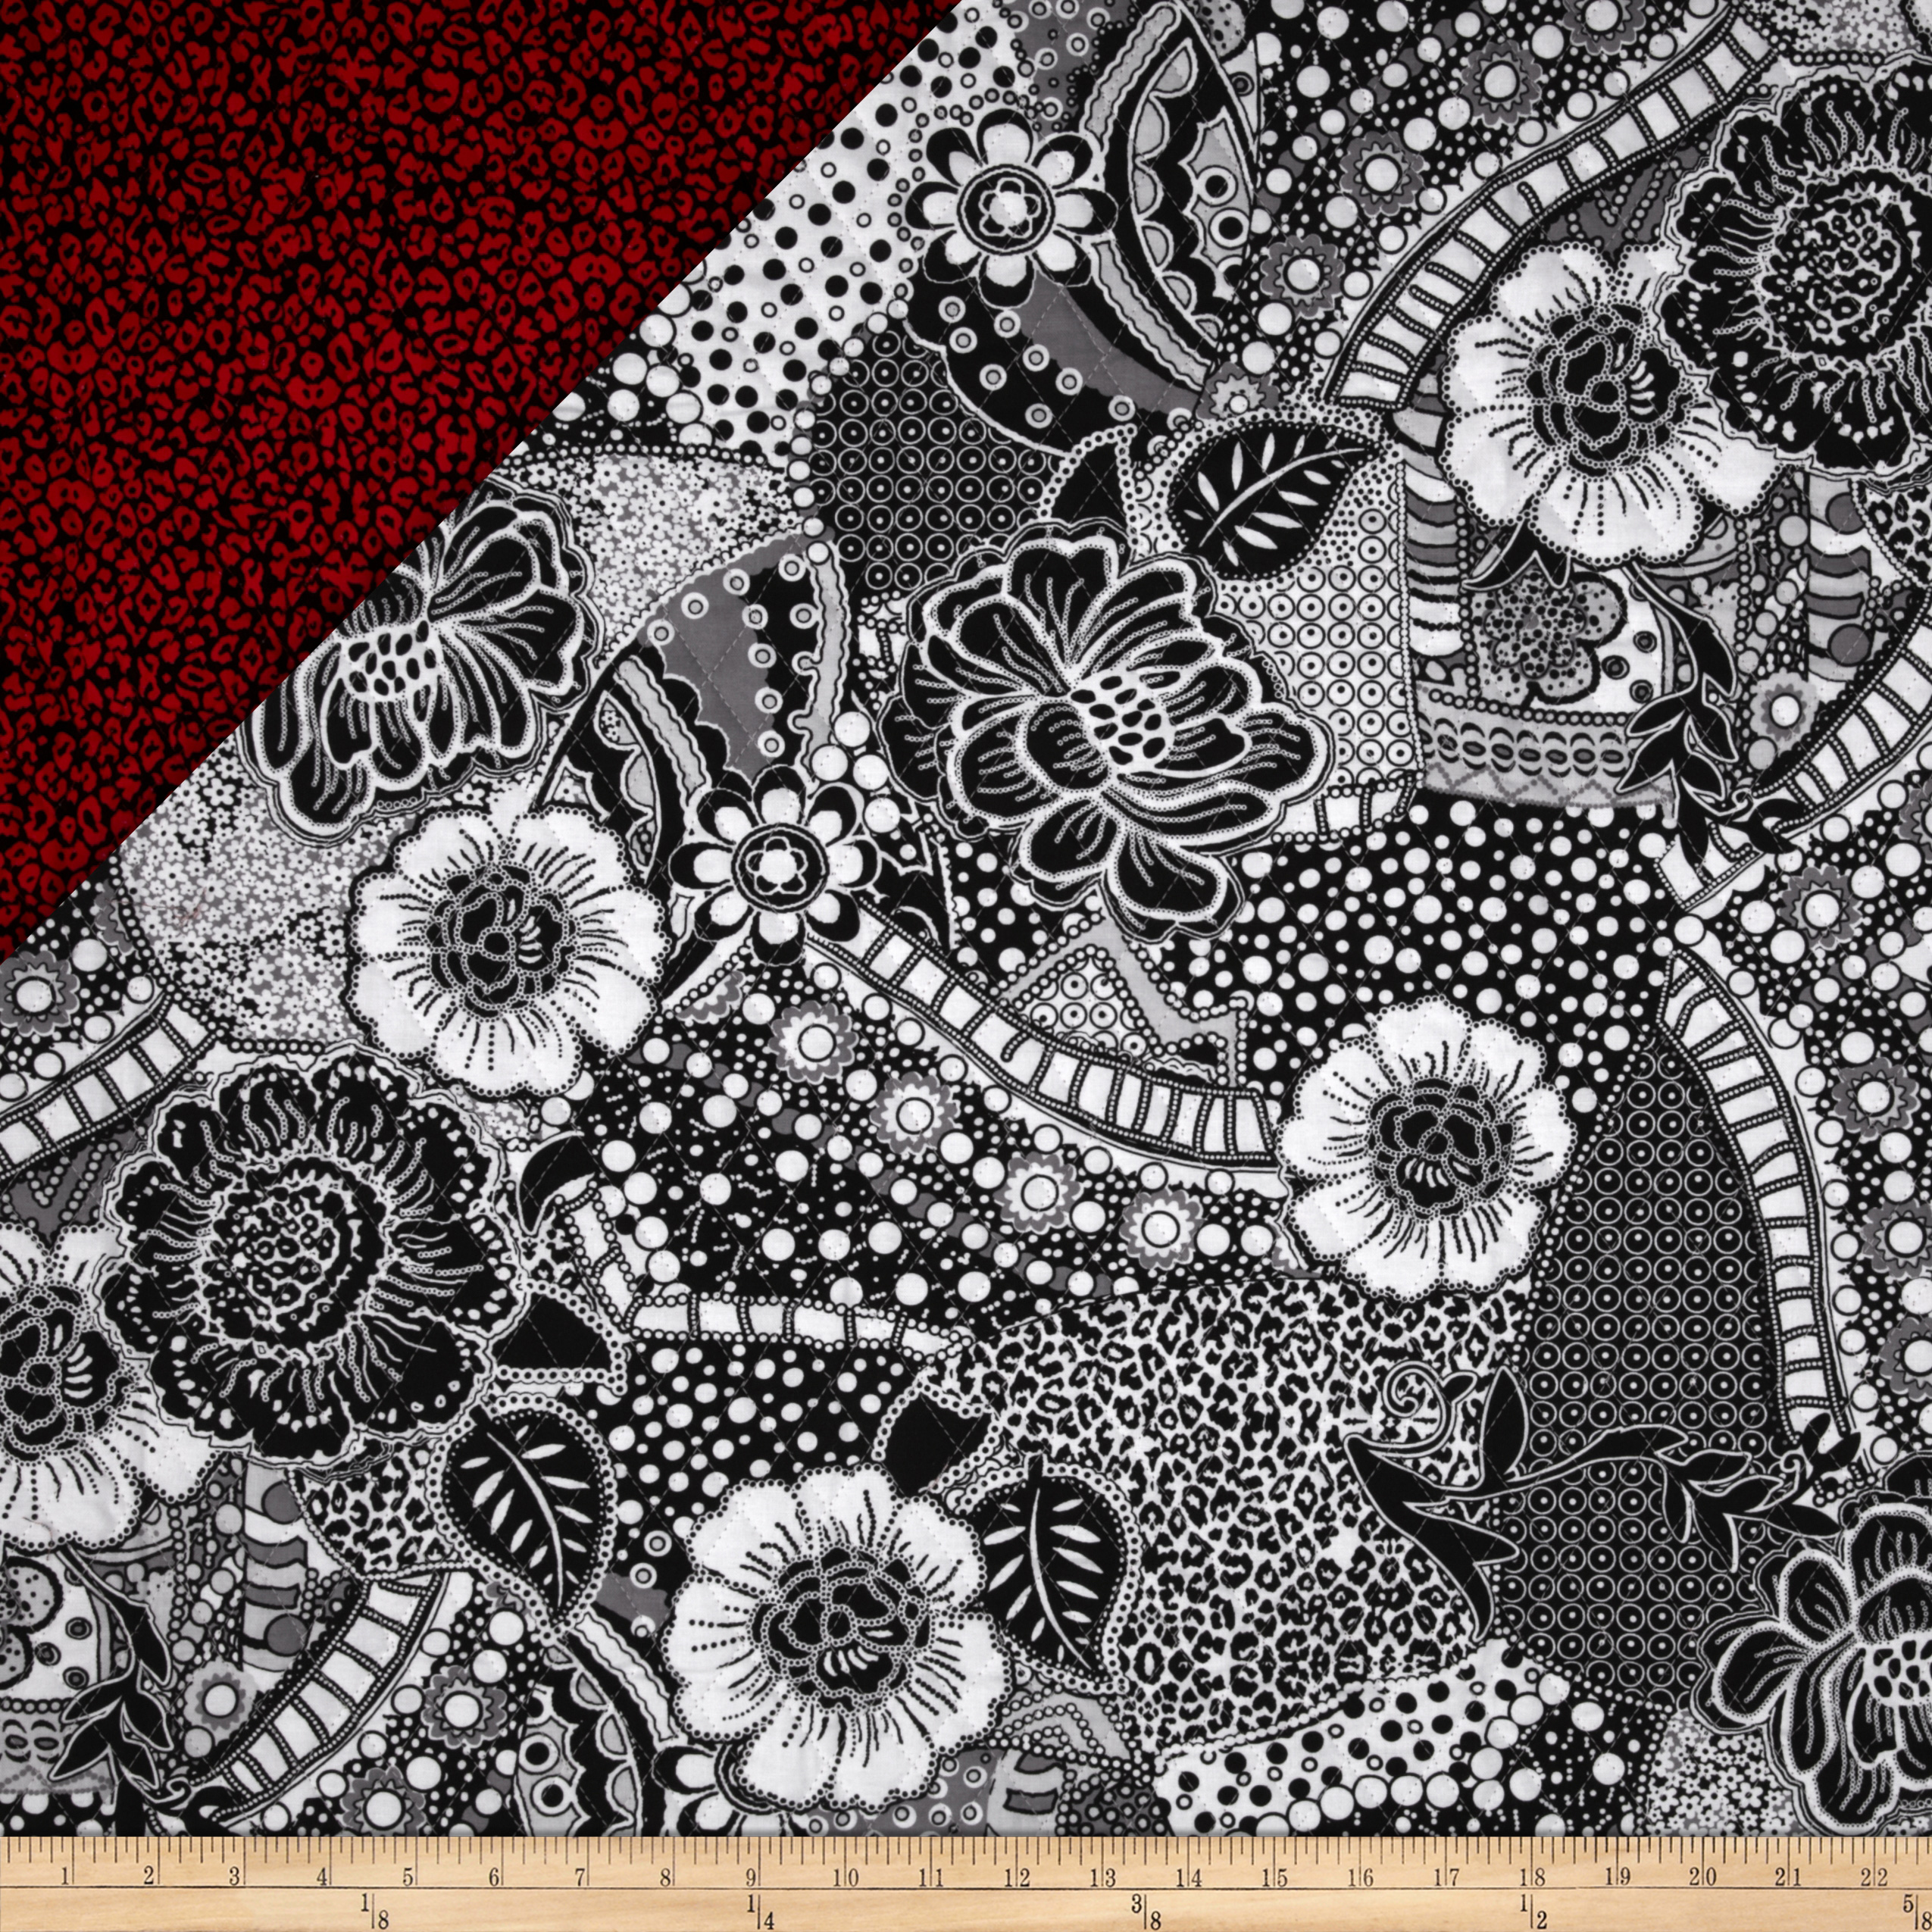 Black Tie Affair Double Sided Quilted Floral Black/Grey